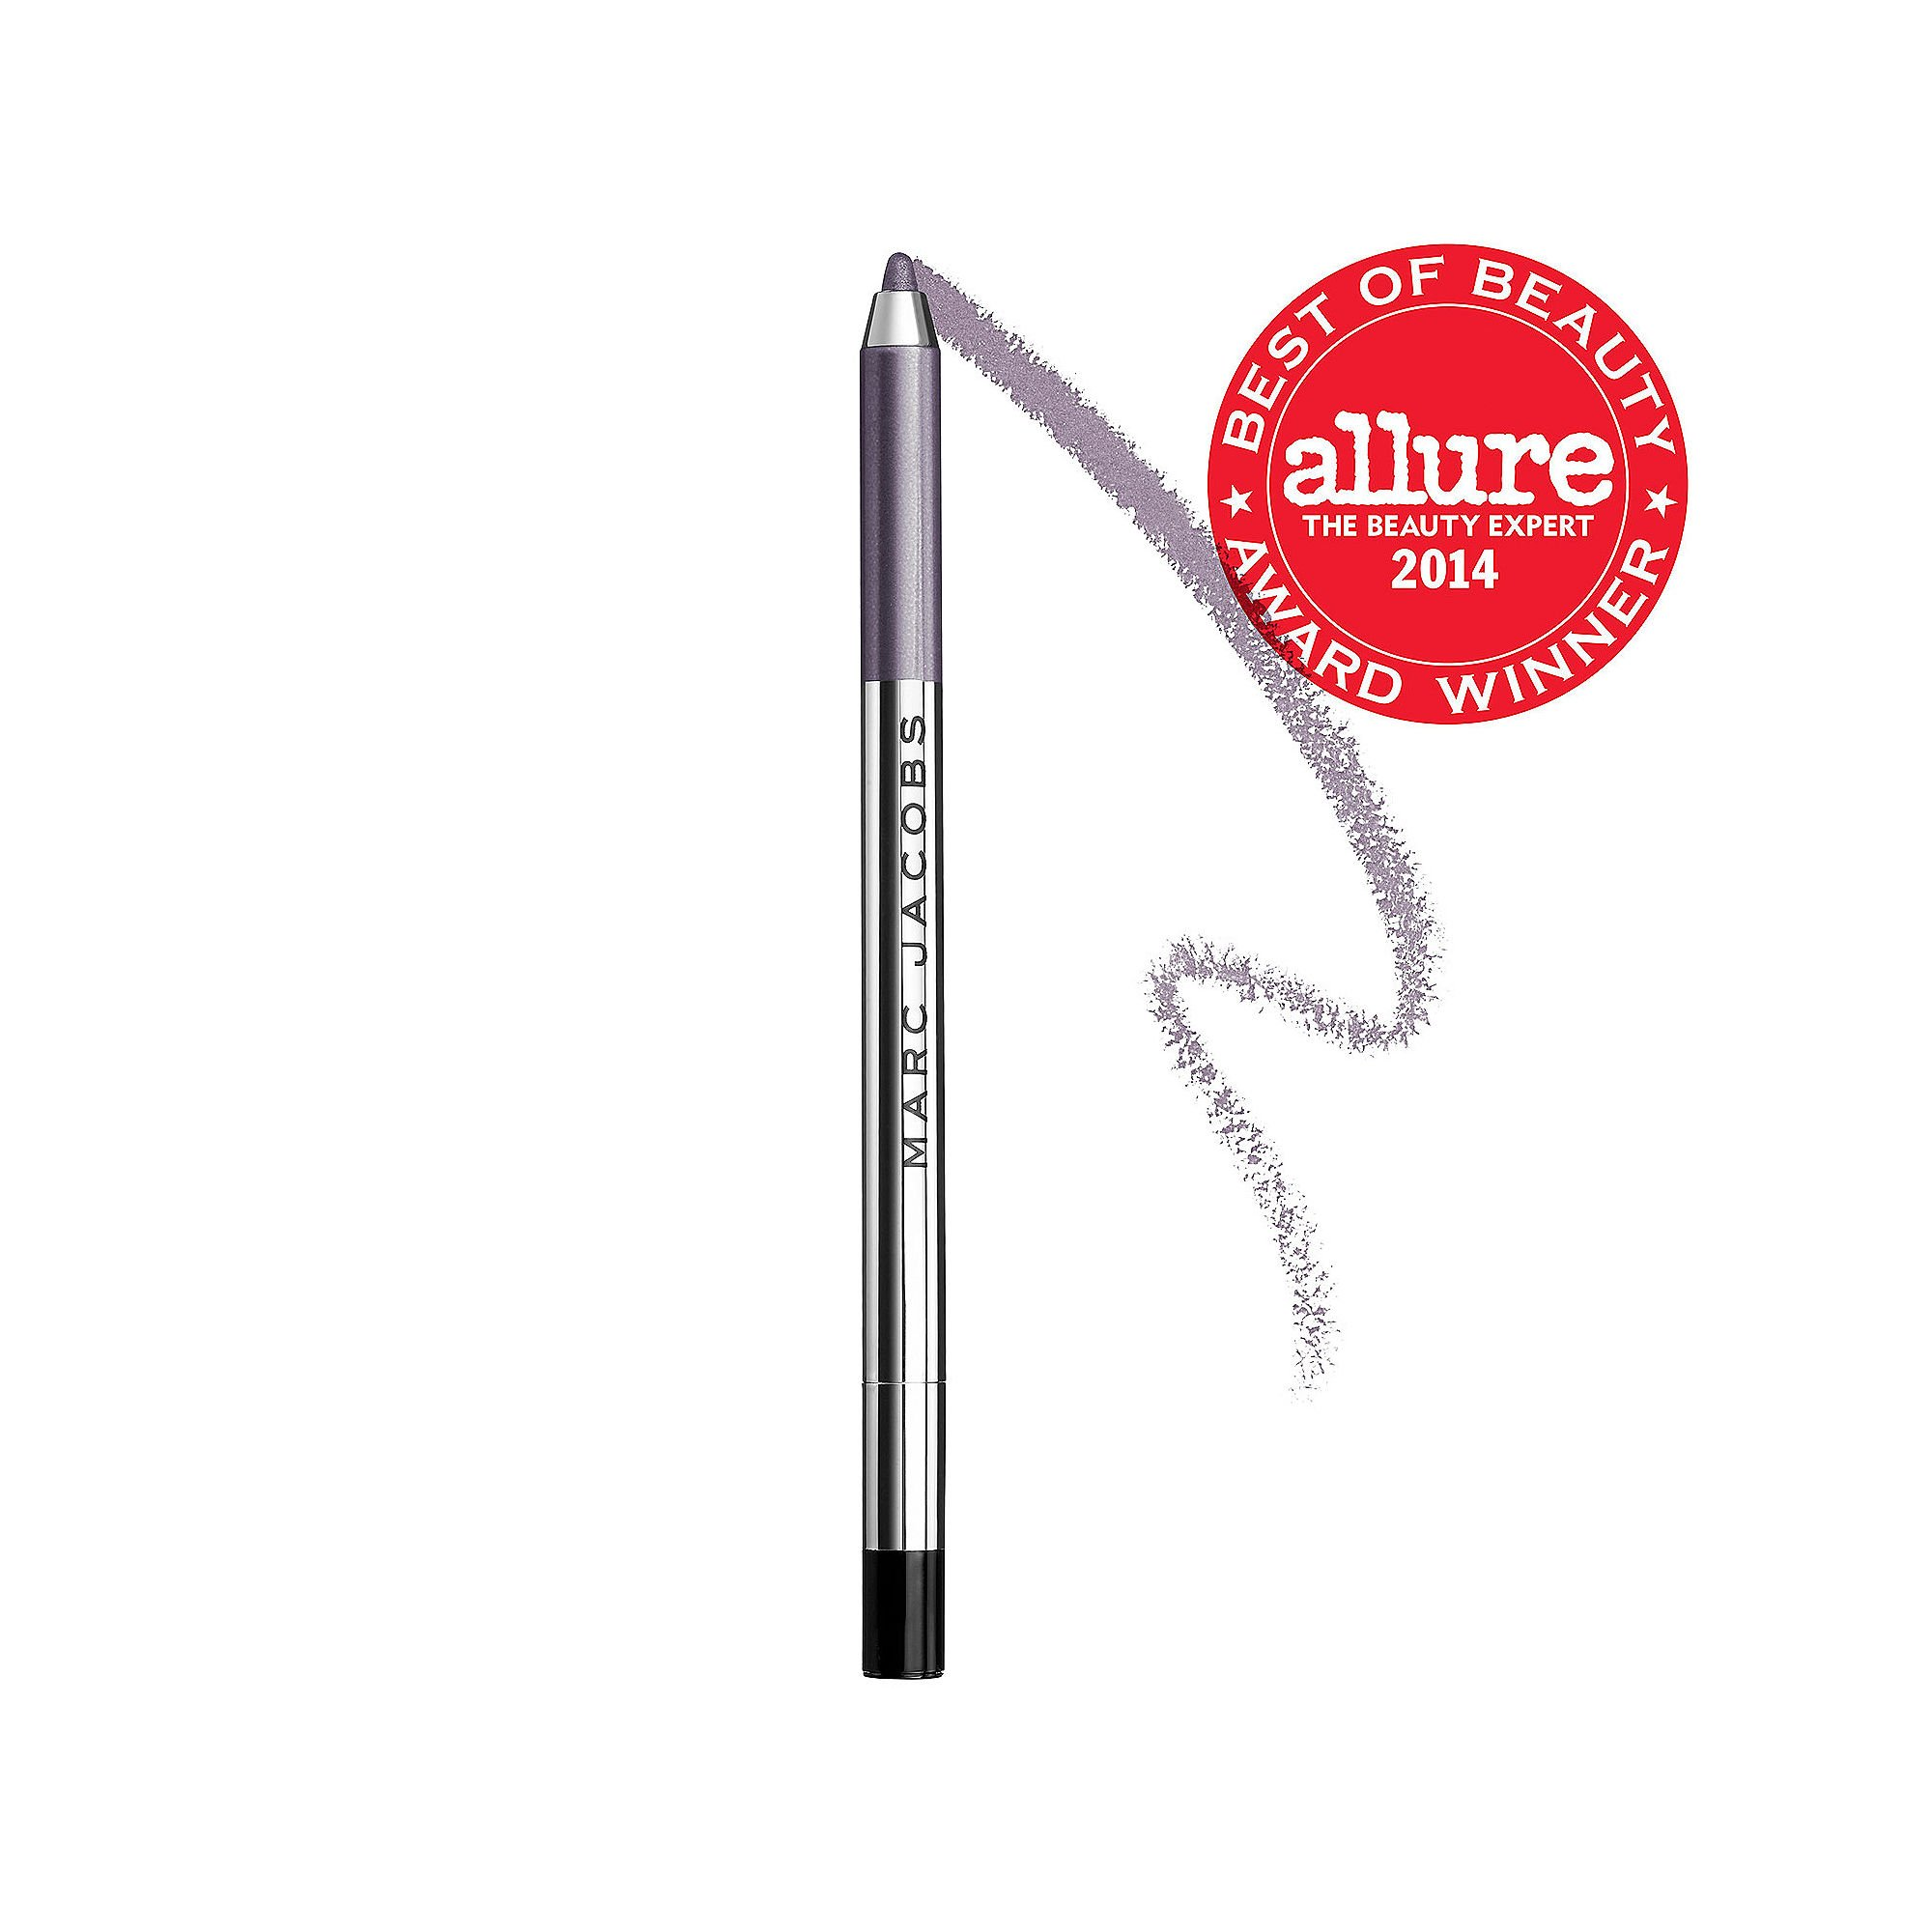 Marc Jacobs HIGHLINER Gel Eye Crayon, Lunatic #64, Full Size, NEW , SEALED, Professional Makeup by Marc Jacobs